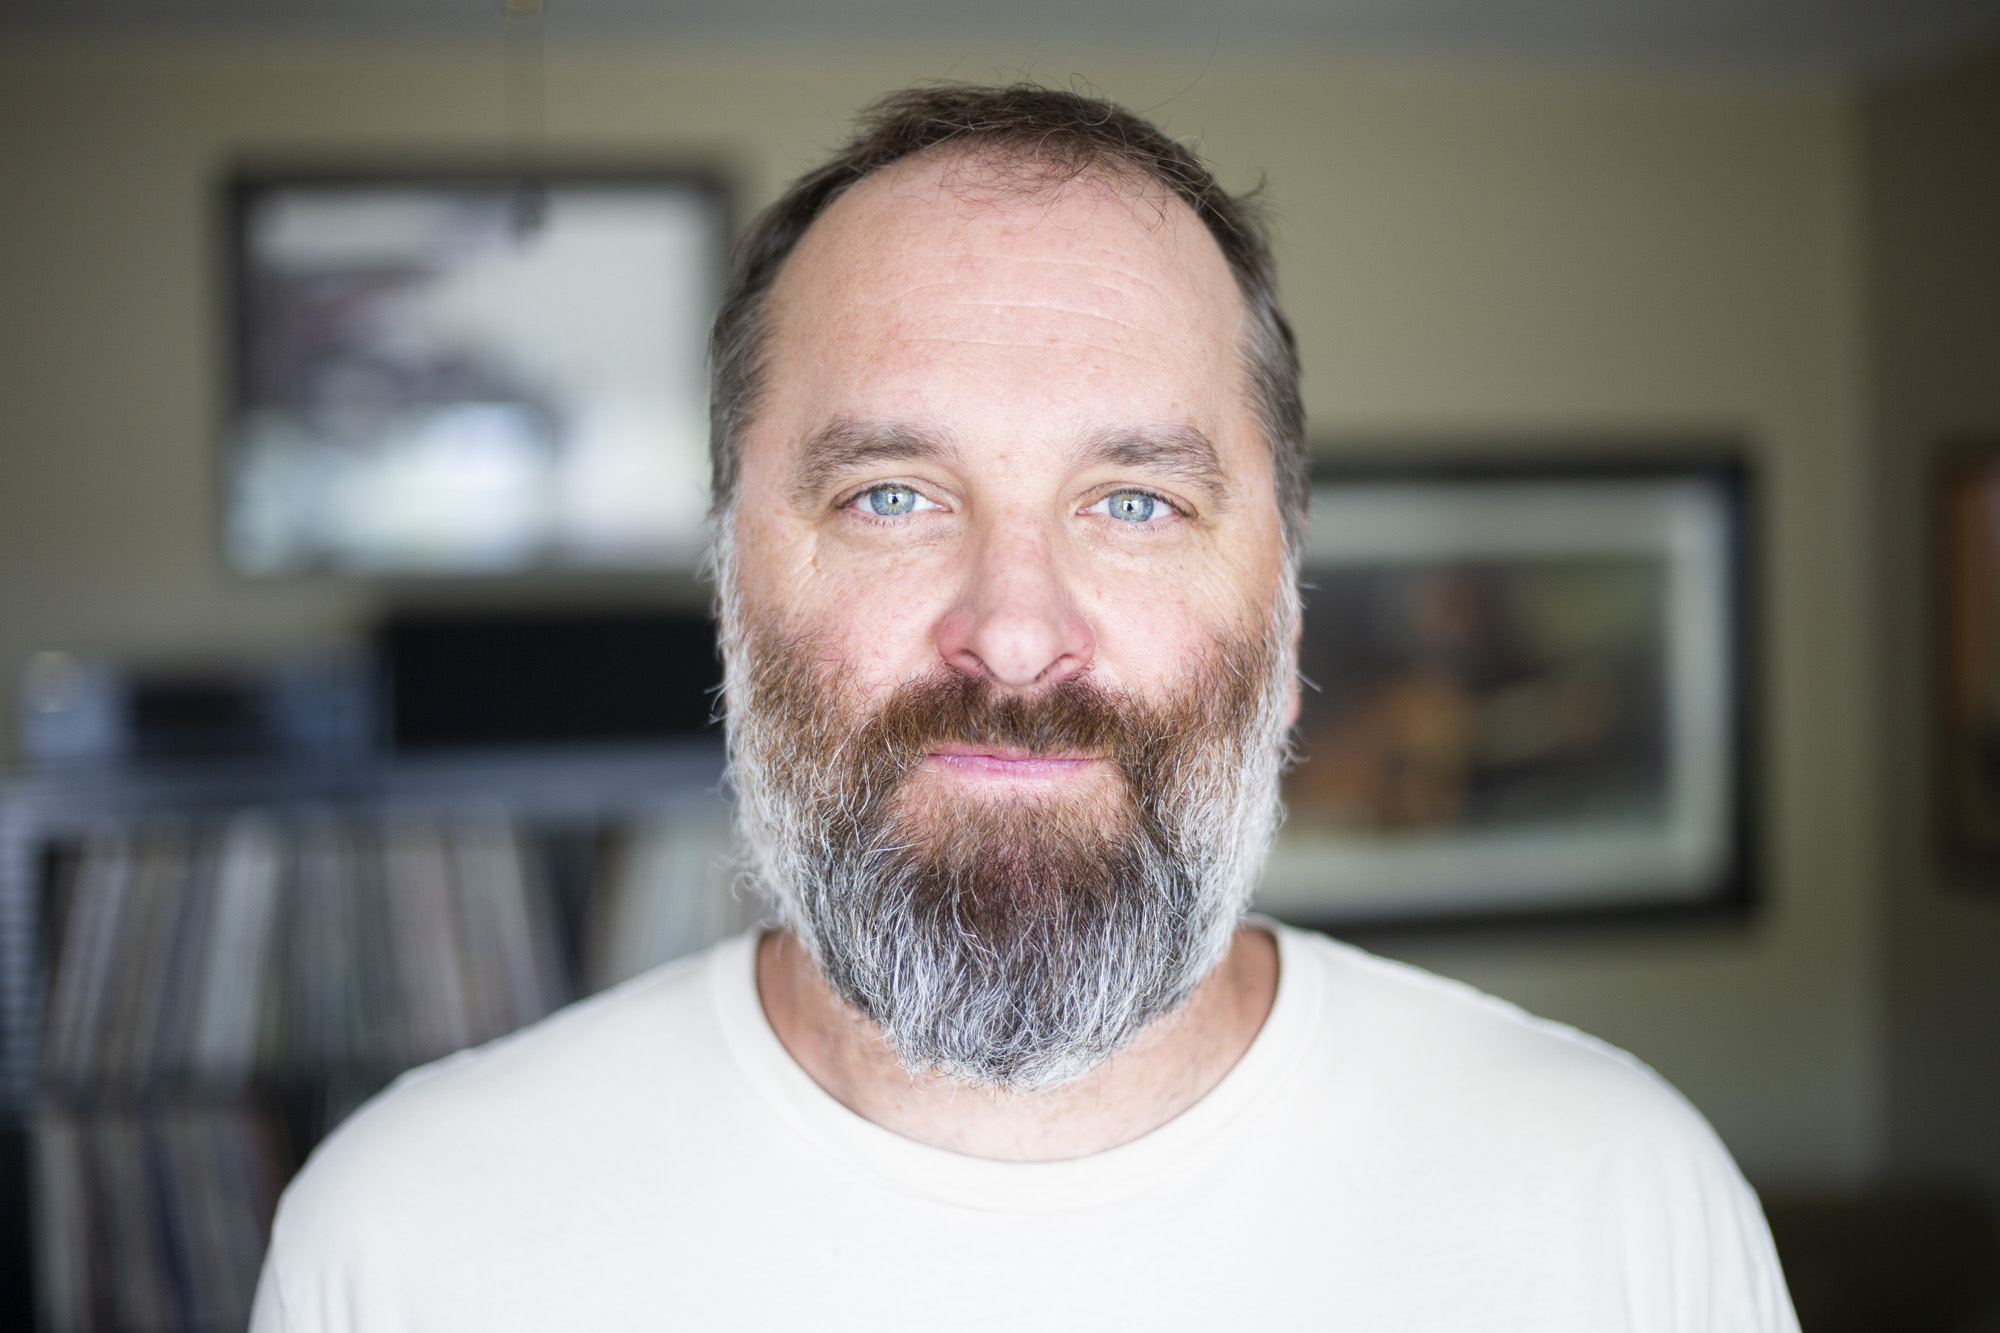 Gregg Morris, 47, at his home